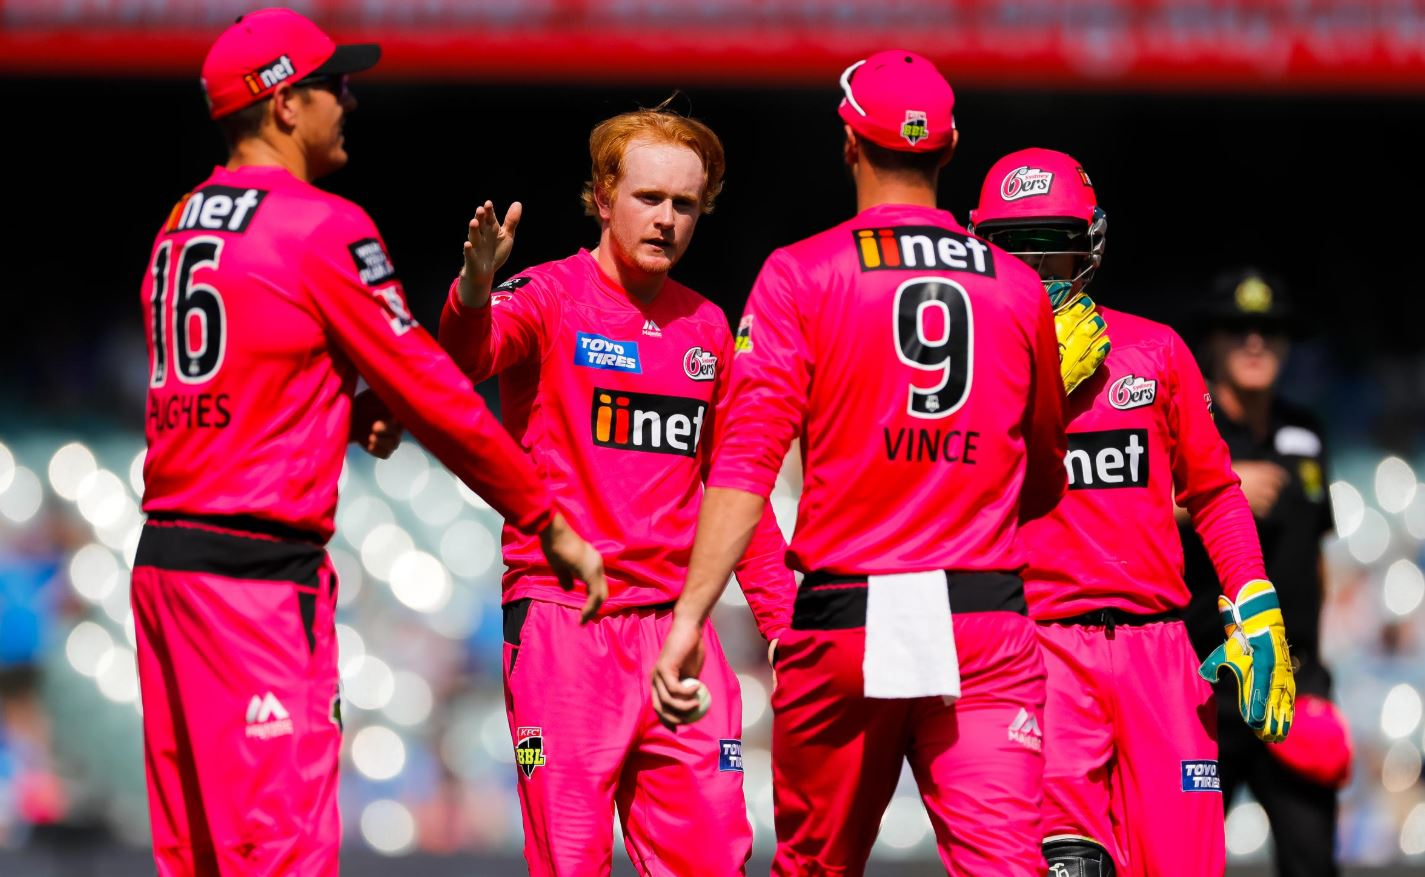 BBL09 Fantasy Tips: Stars vs Sixers